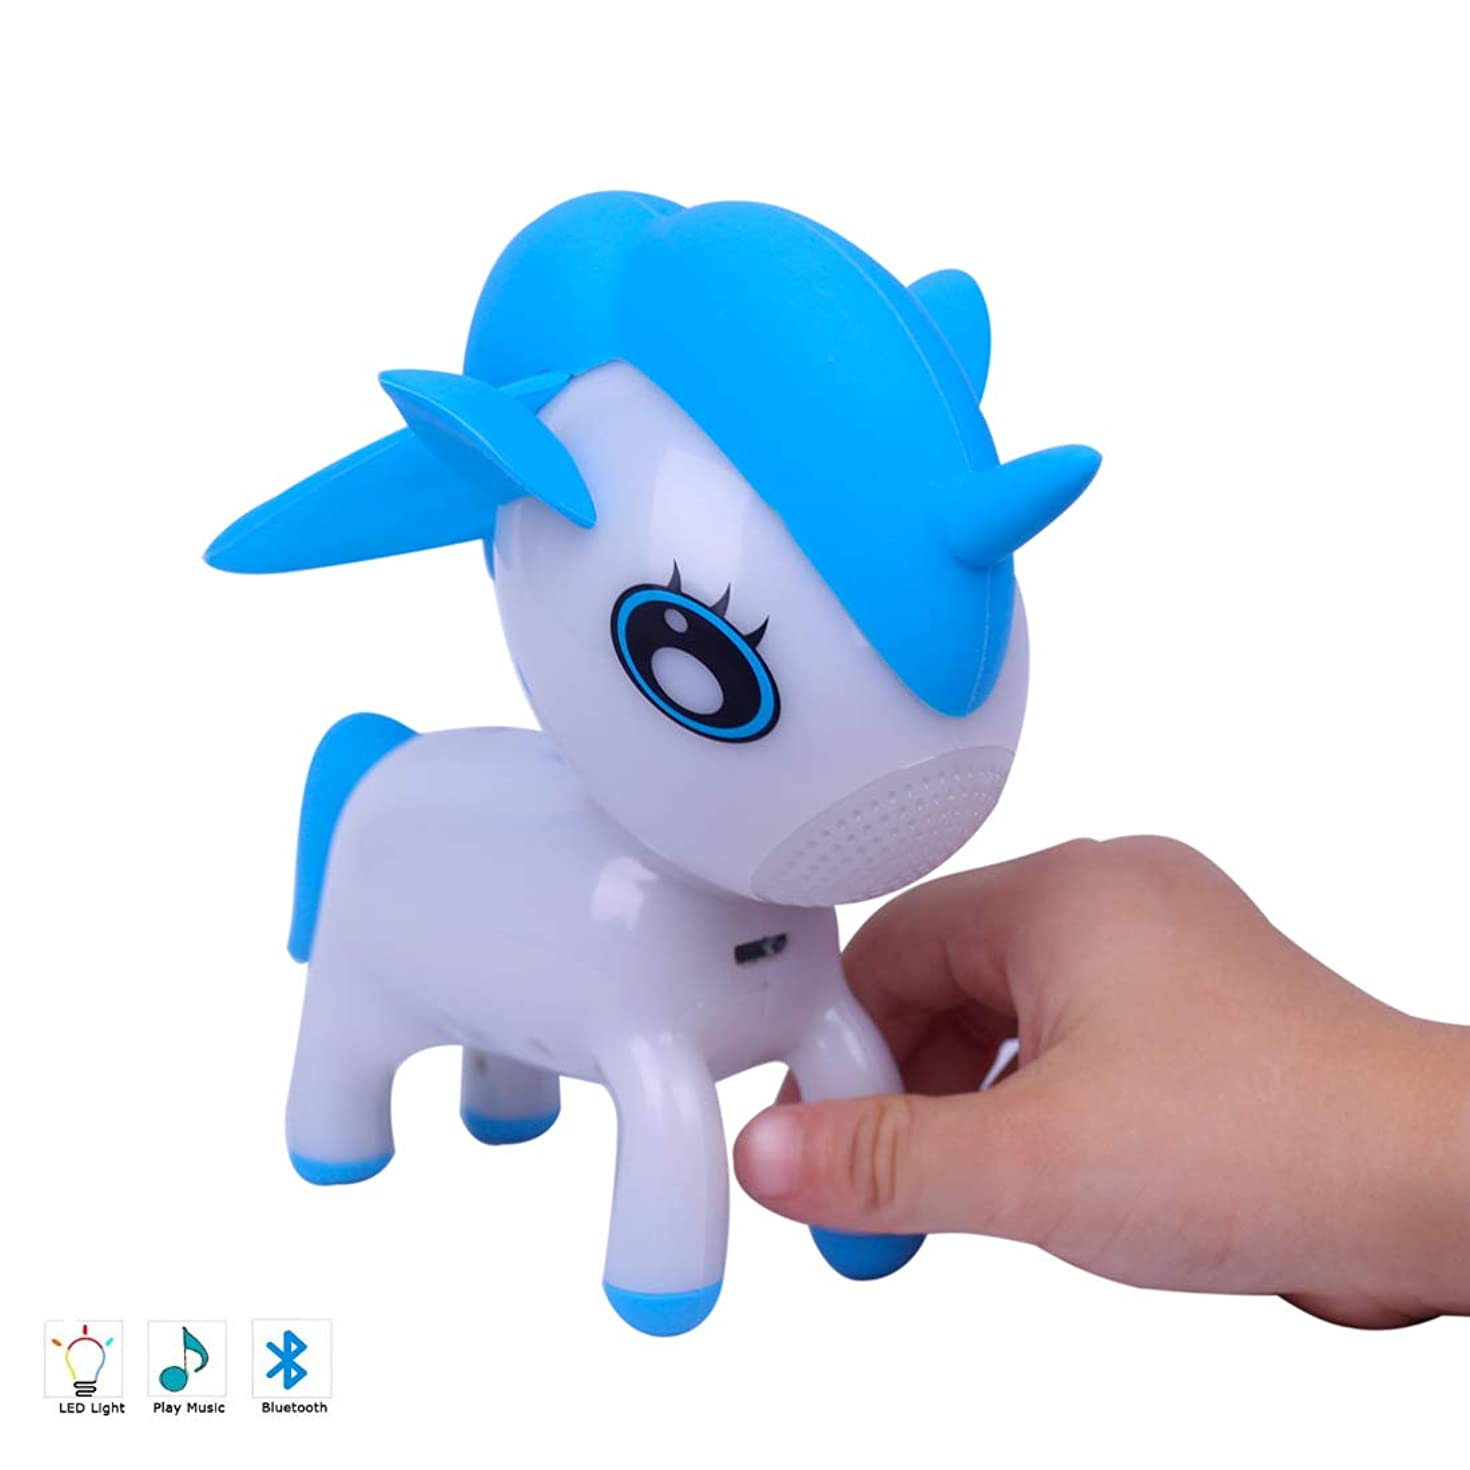 GRULLIN Unicorn Bluetooth Speakers for Kids, Portable Wireless Speaker with RGB Color Night Lamp, Music Player (Blue)